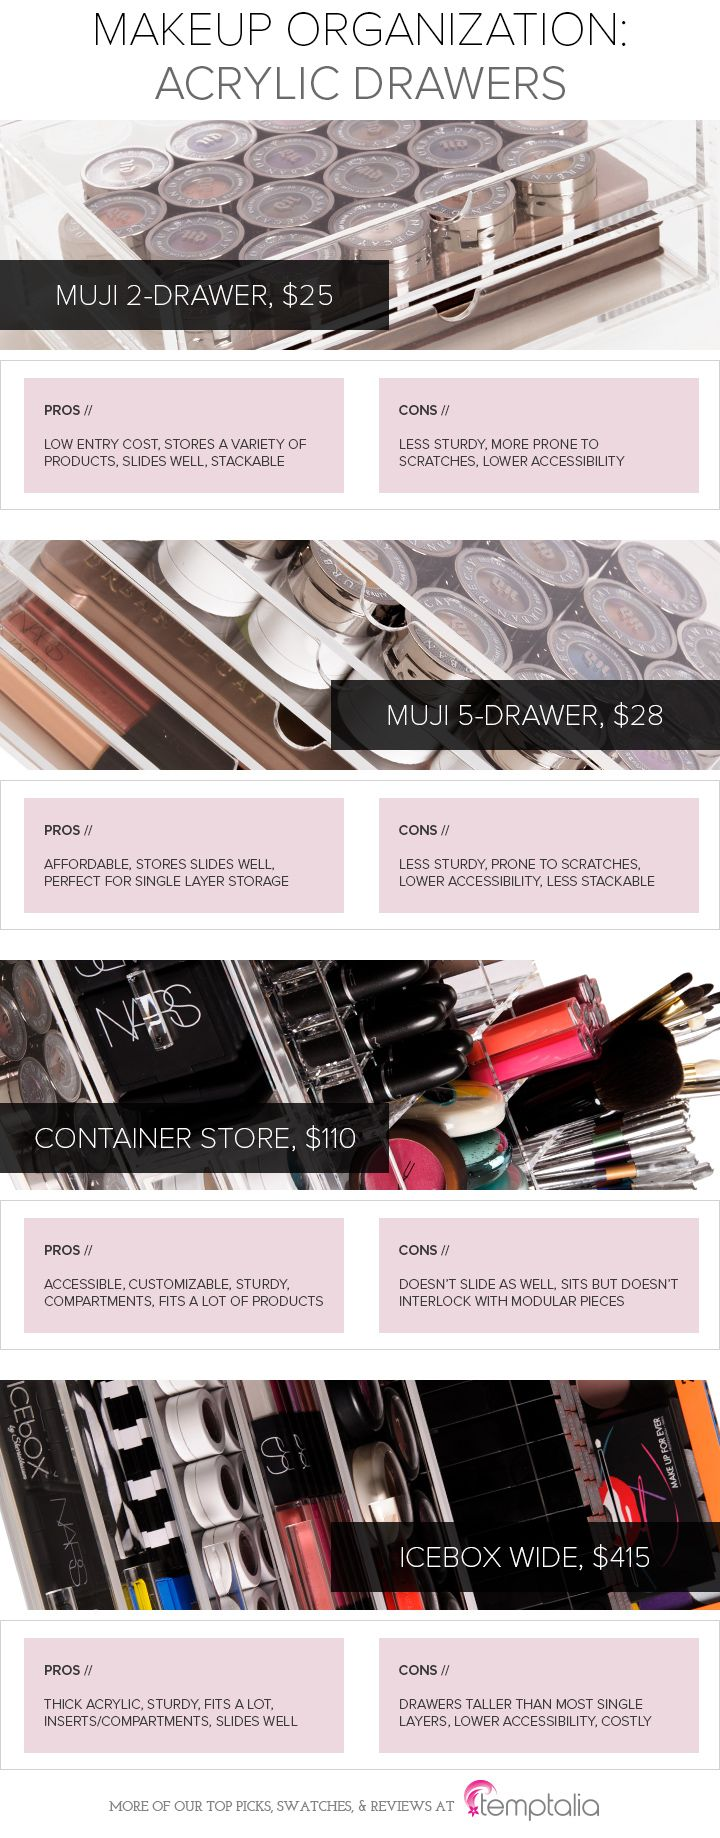 Makeup Organization: Acrylic Organizers - Acrylic Makeup Organizers Overview, Thoughts, Comparisons